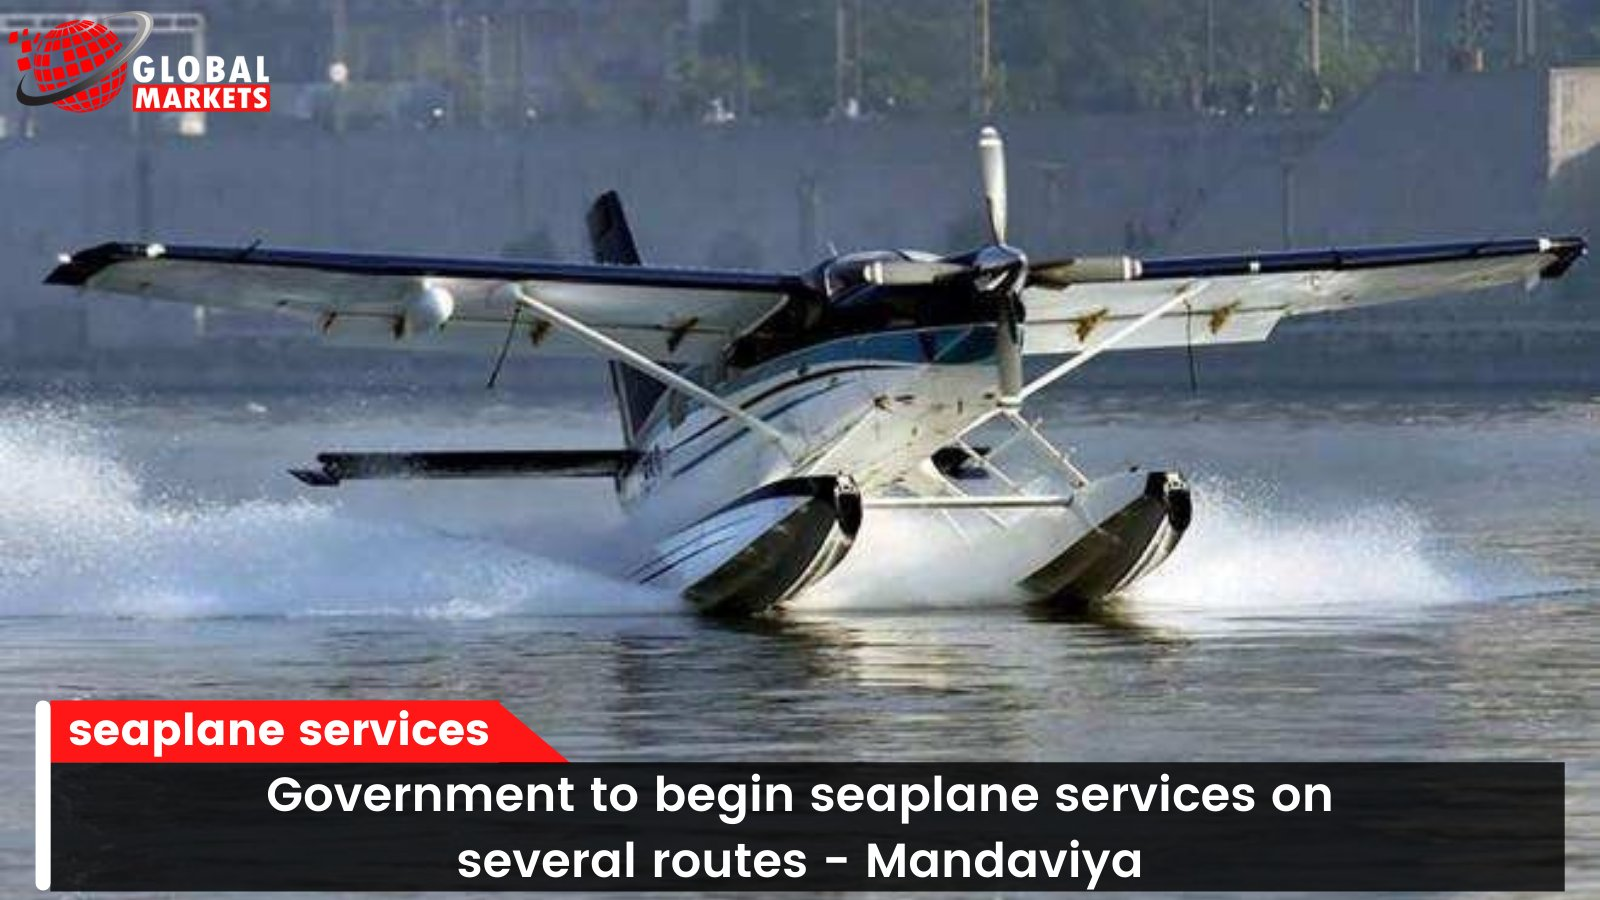 Government to begin seaplane services on several routes - Mandaviya